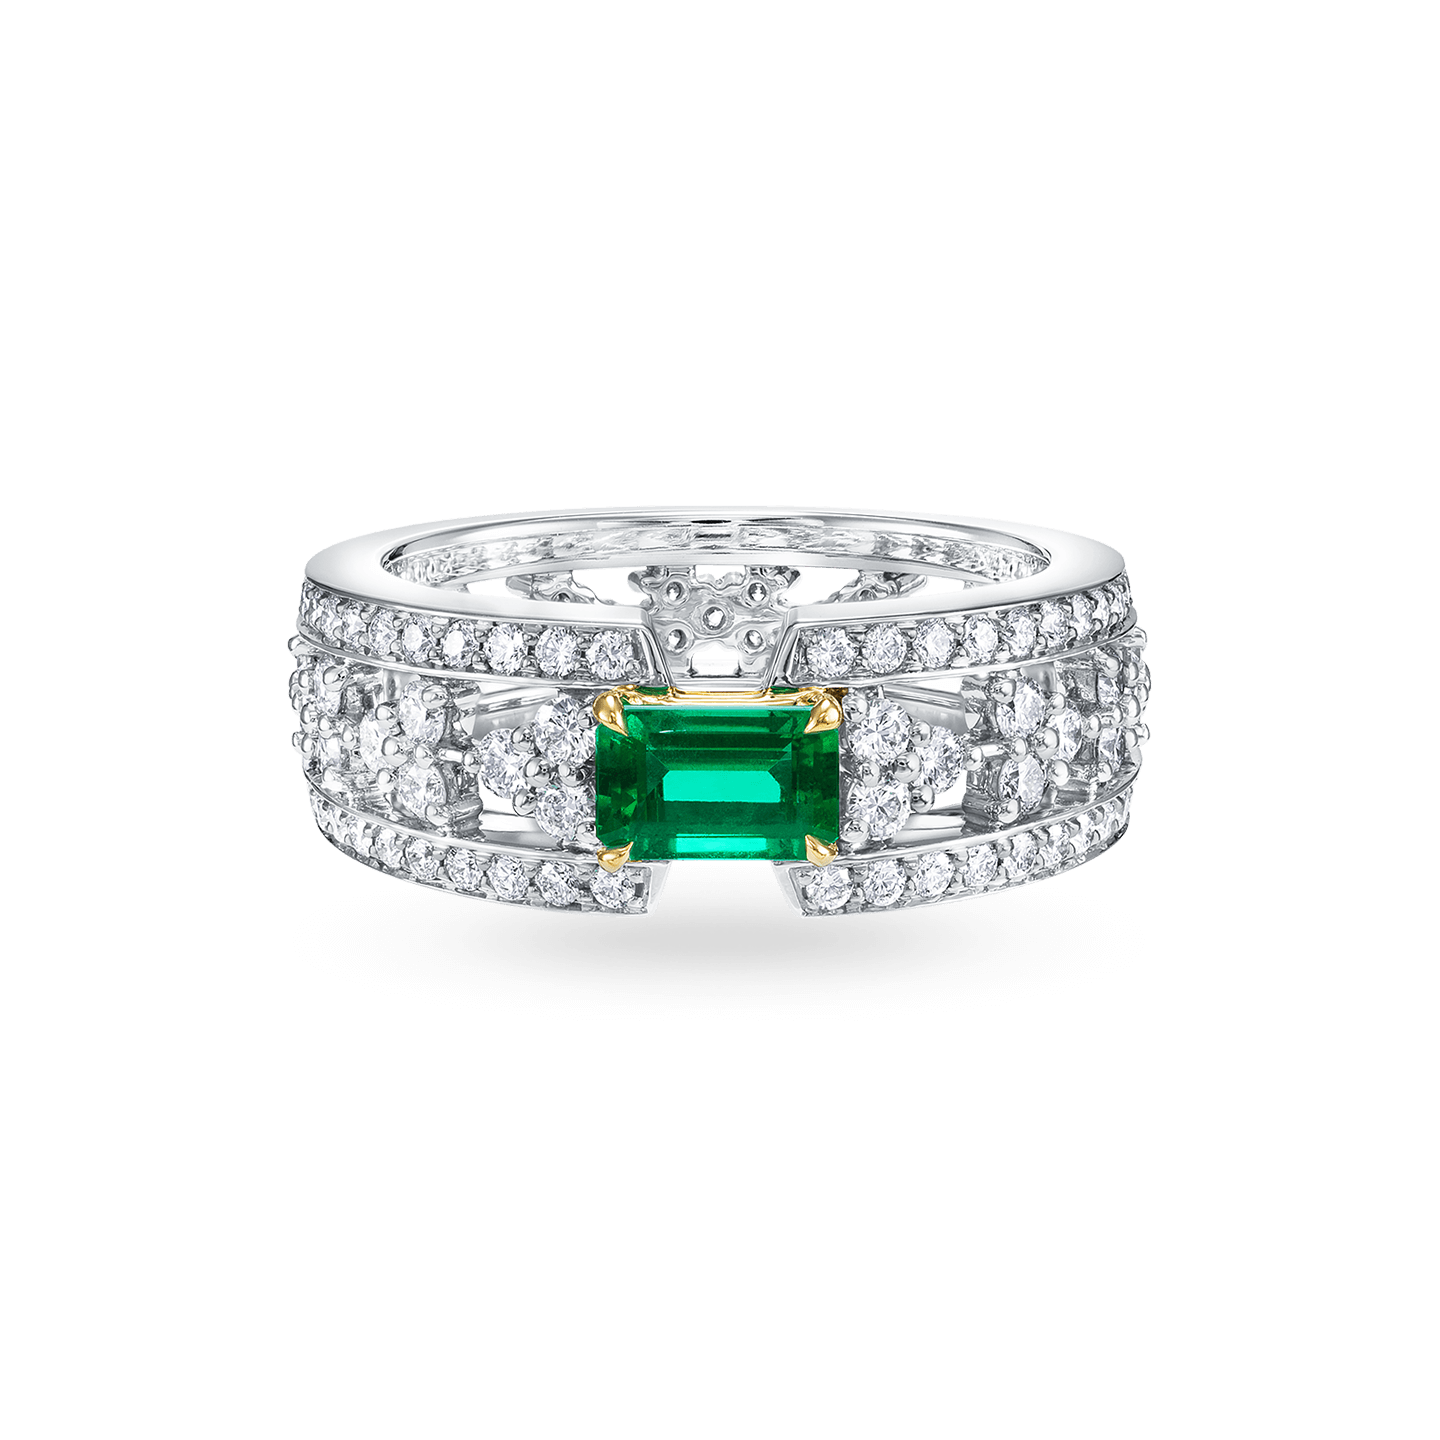 Emerald and Diamond Ring, Product Image 1